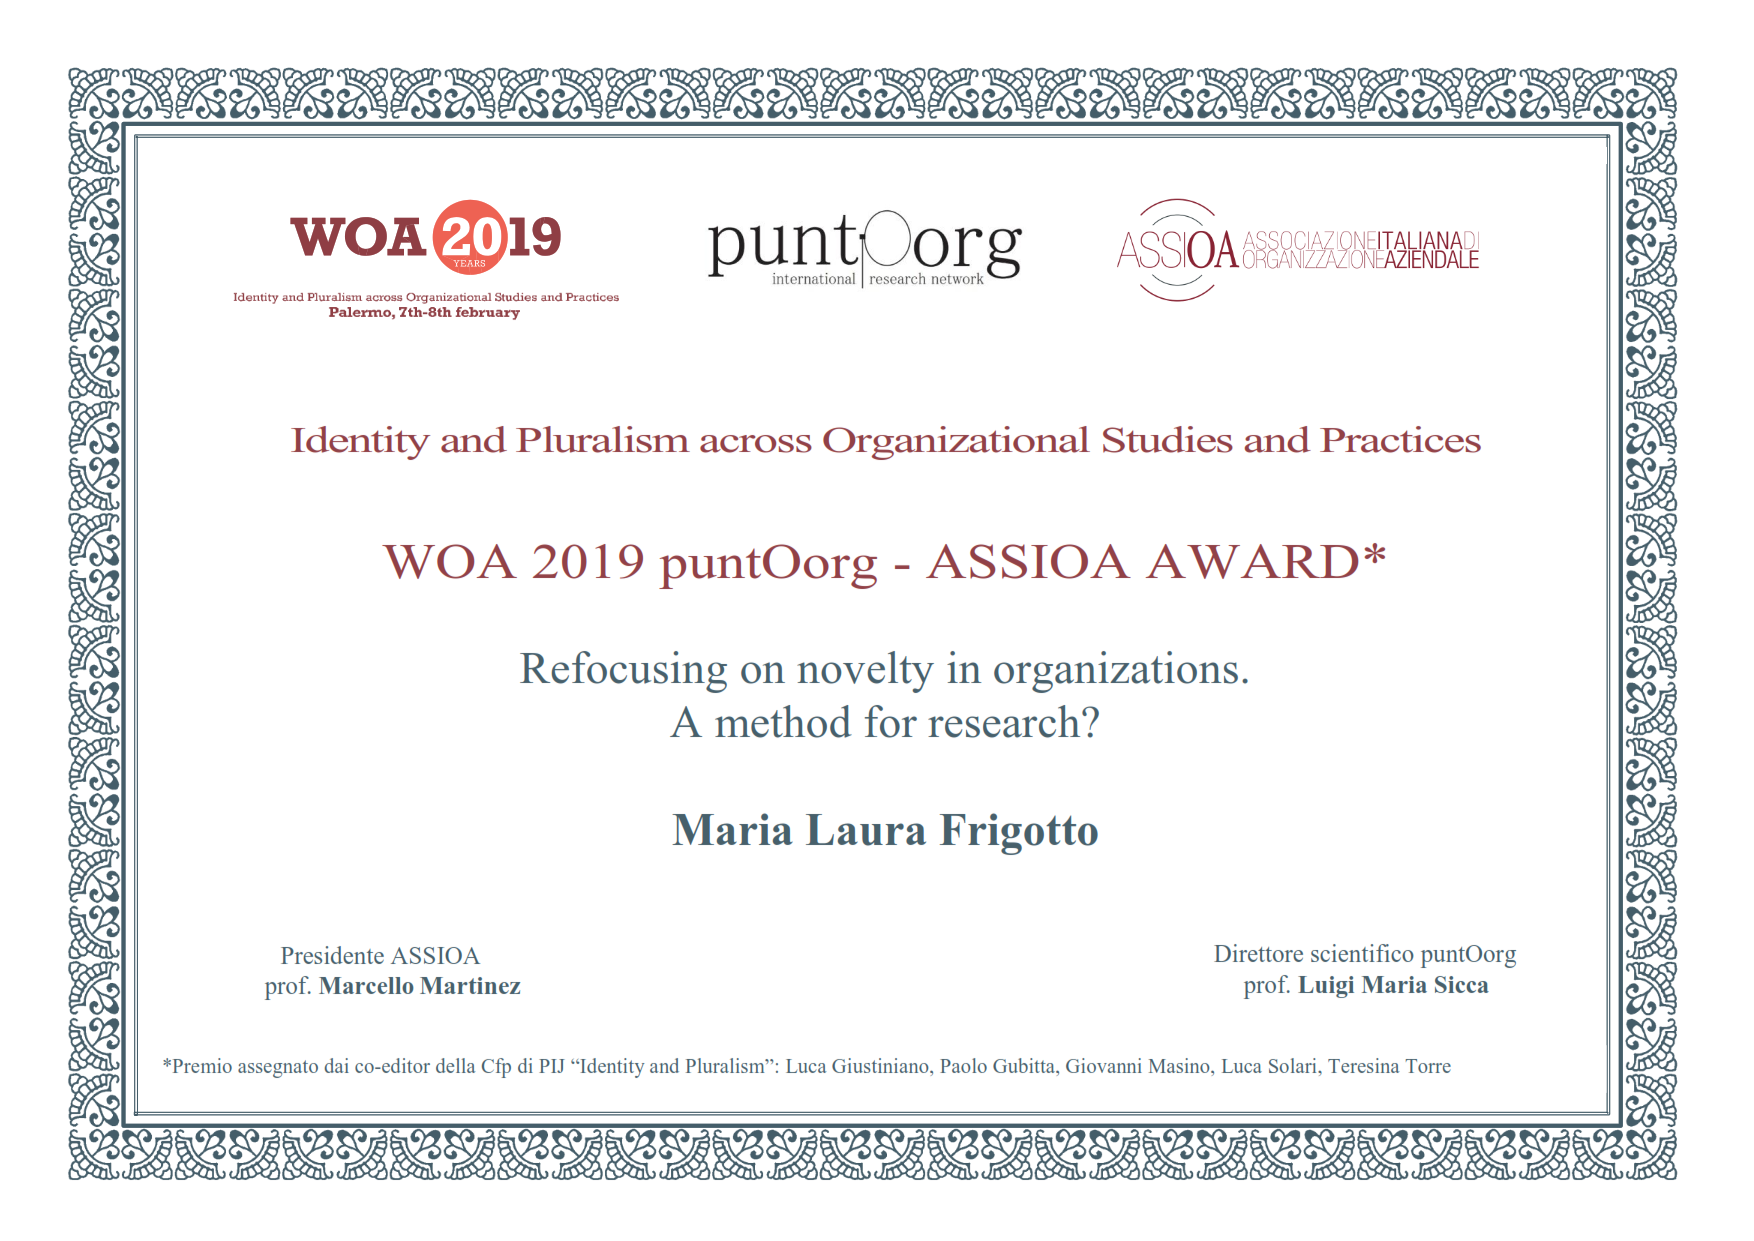 Definitivo puntOorg award 001